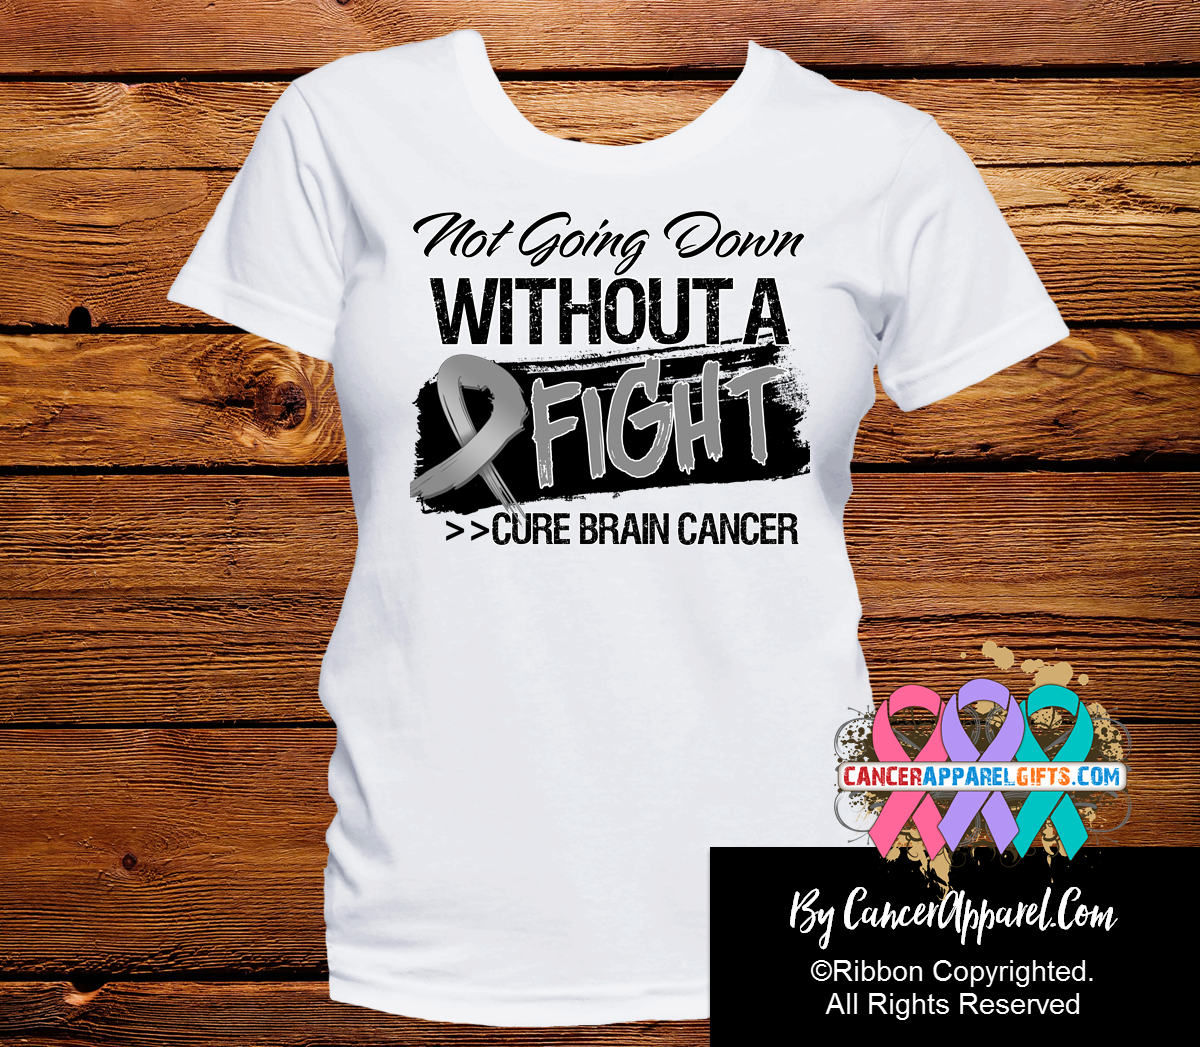 Brain Cancer Not Going Down Without a Fight Shirts - Cancer Apparel and Gifts